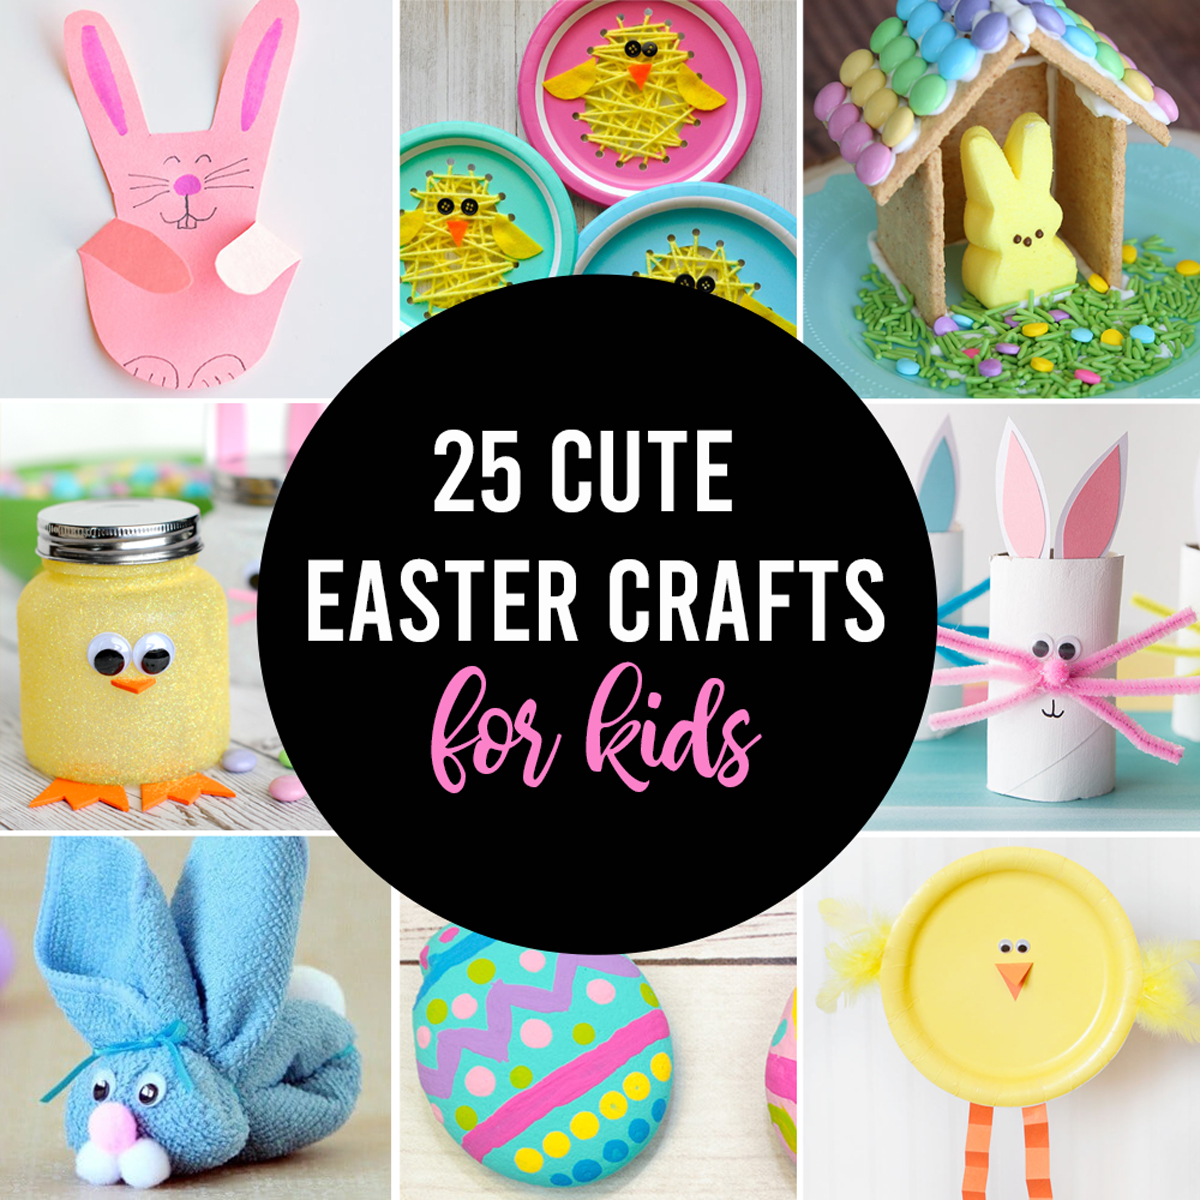 32 Adorable Easter Crafts for Kids easy + fun   It's Always Autumn